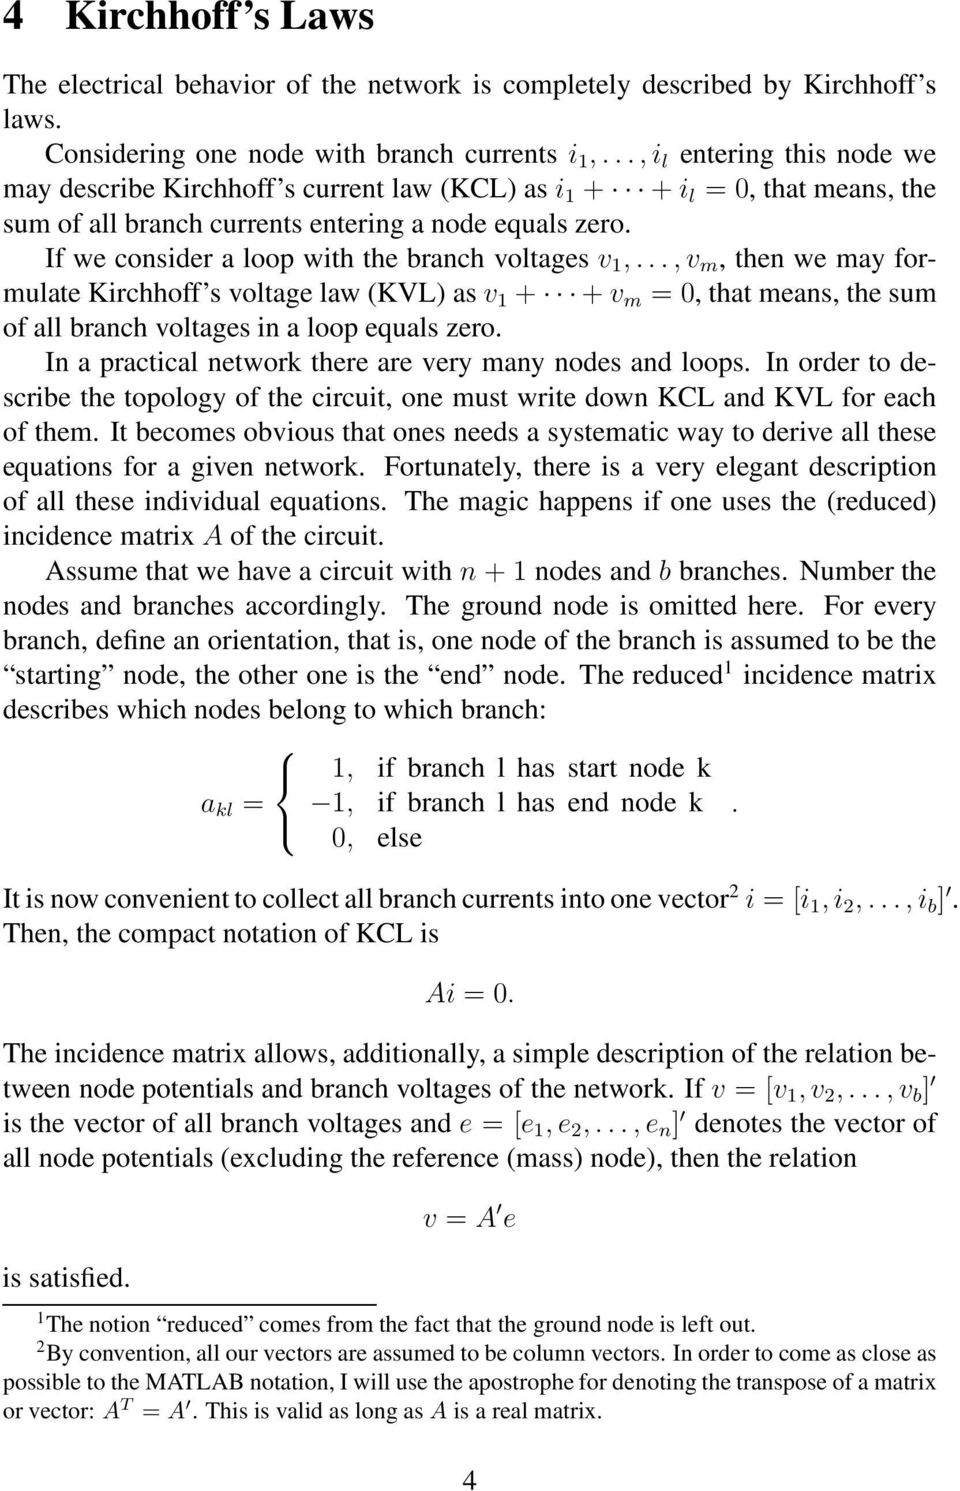 If we consider a loop with the branch voltages v 1,...,v m, then we may formulate Kirchhoff s voltage law (KVL) as v 1 + + v m = 0, that means, the sum of all branch voltages in a loop equals zero.